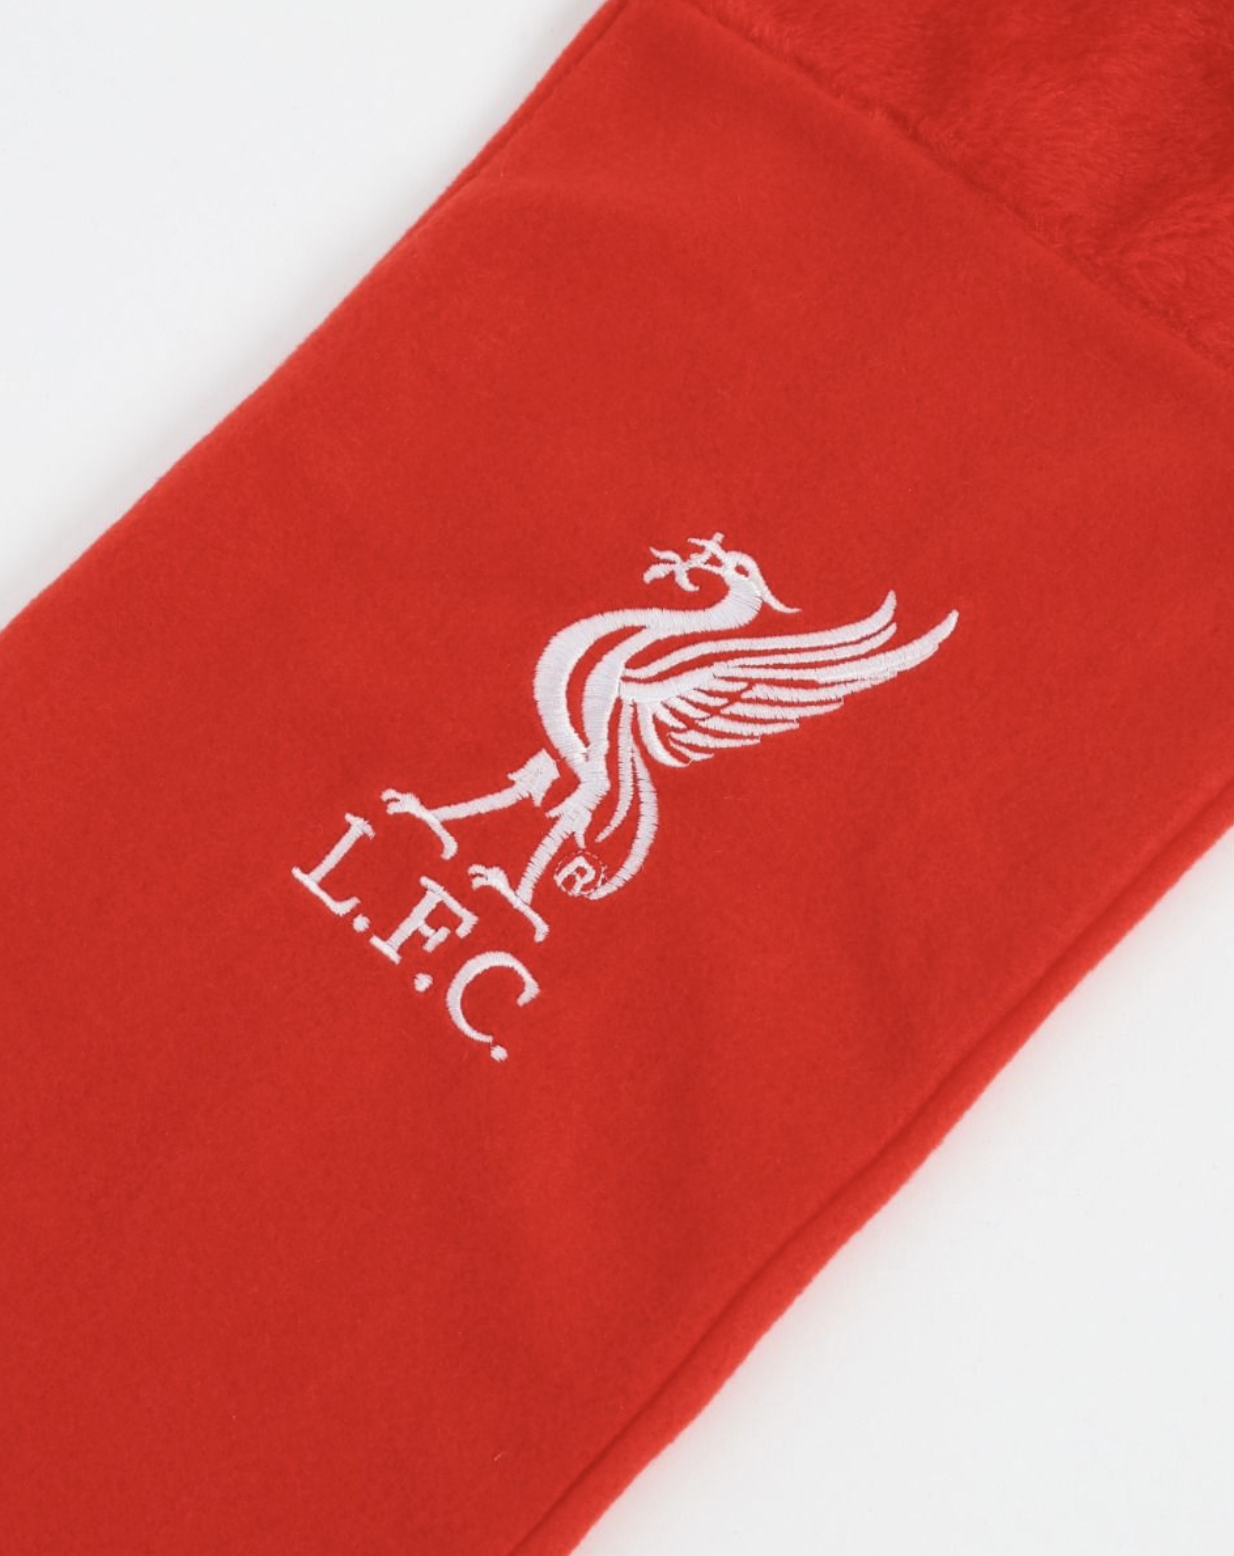 Liverpool FC Red Christmas Stocking